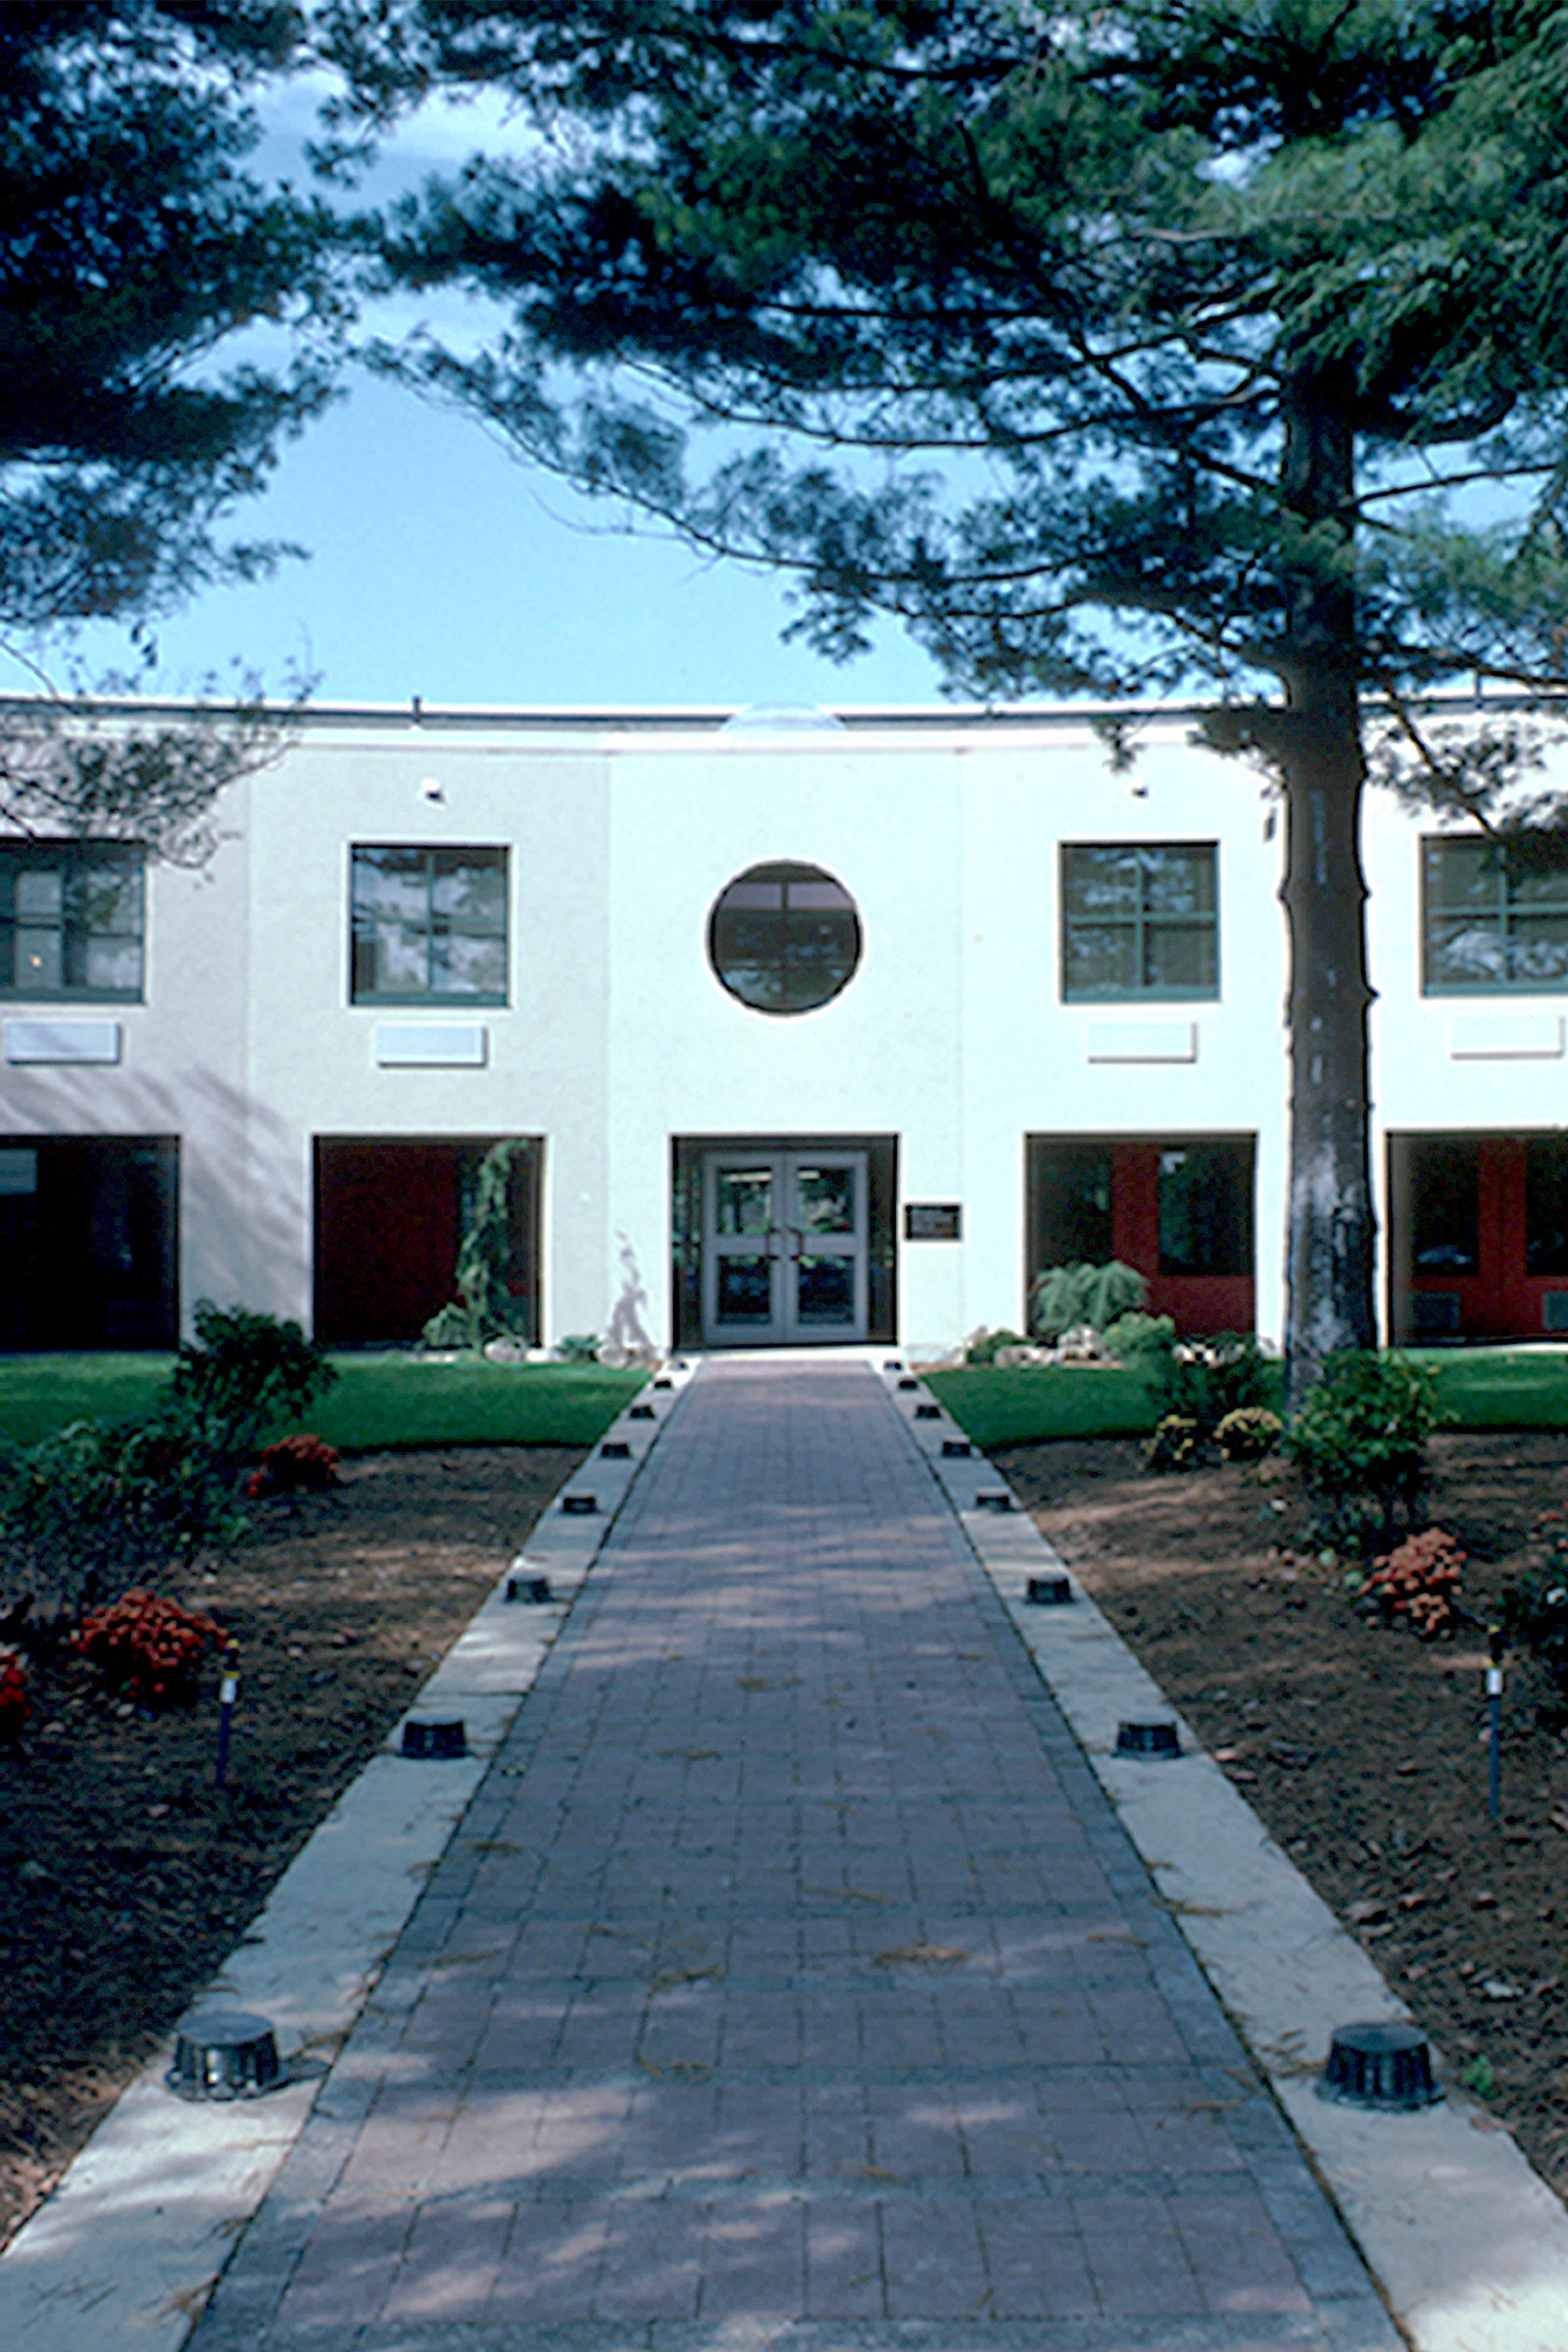 Exterior View 3 - Site Entry to Building.jpg